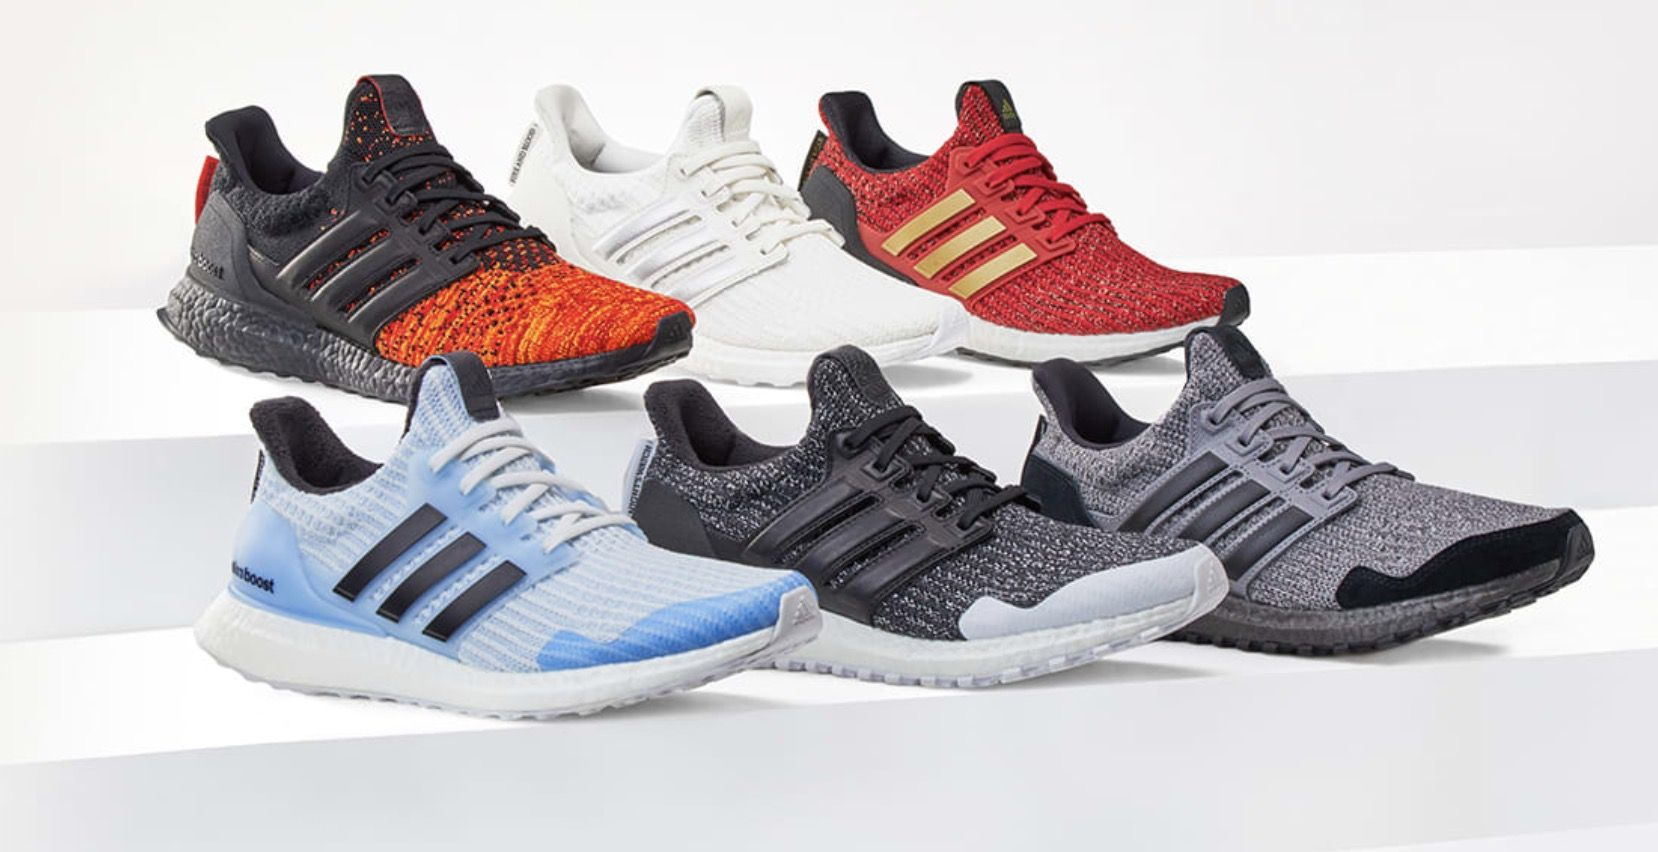 Adidas launch Game of Thrones